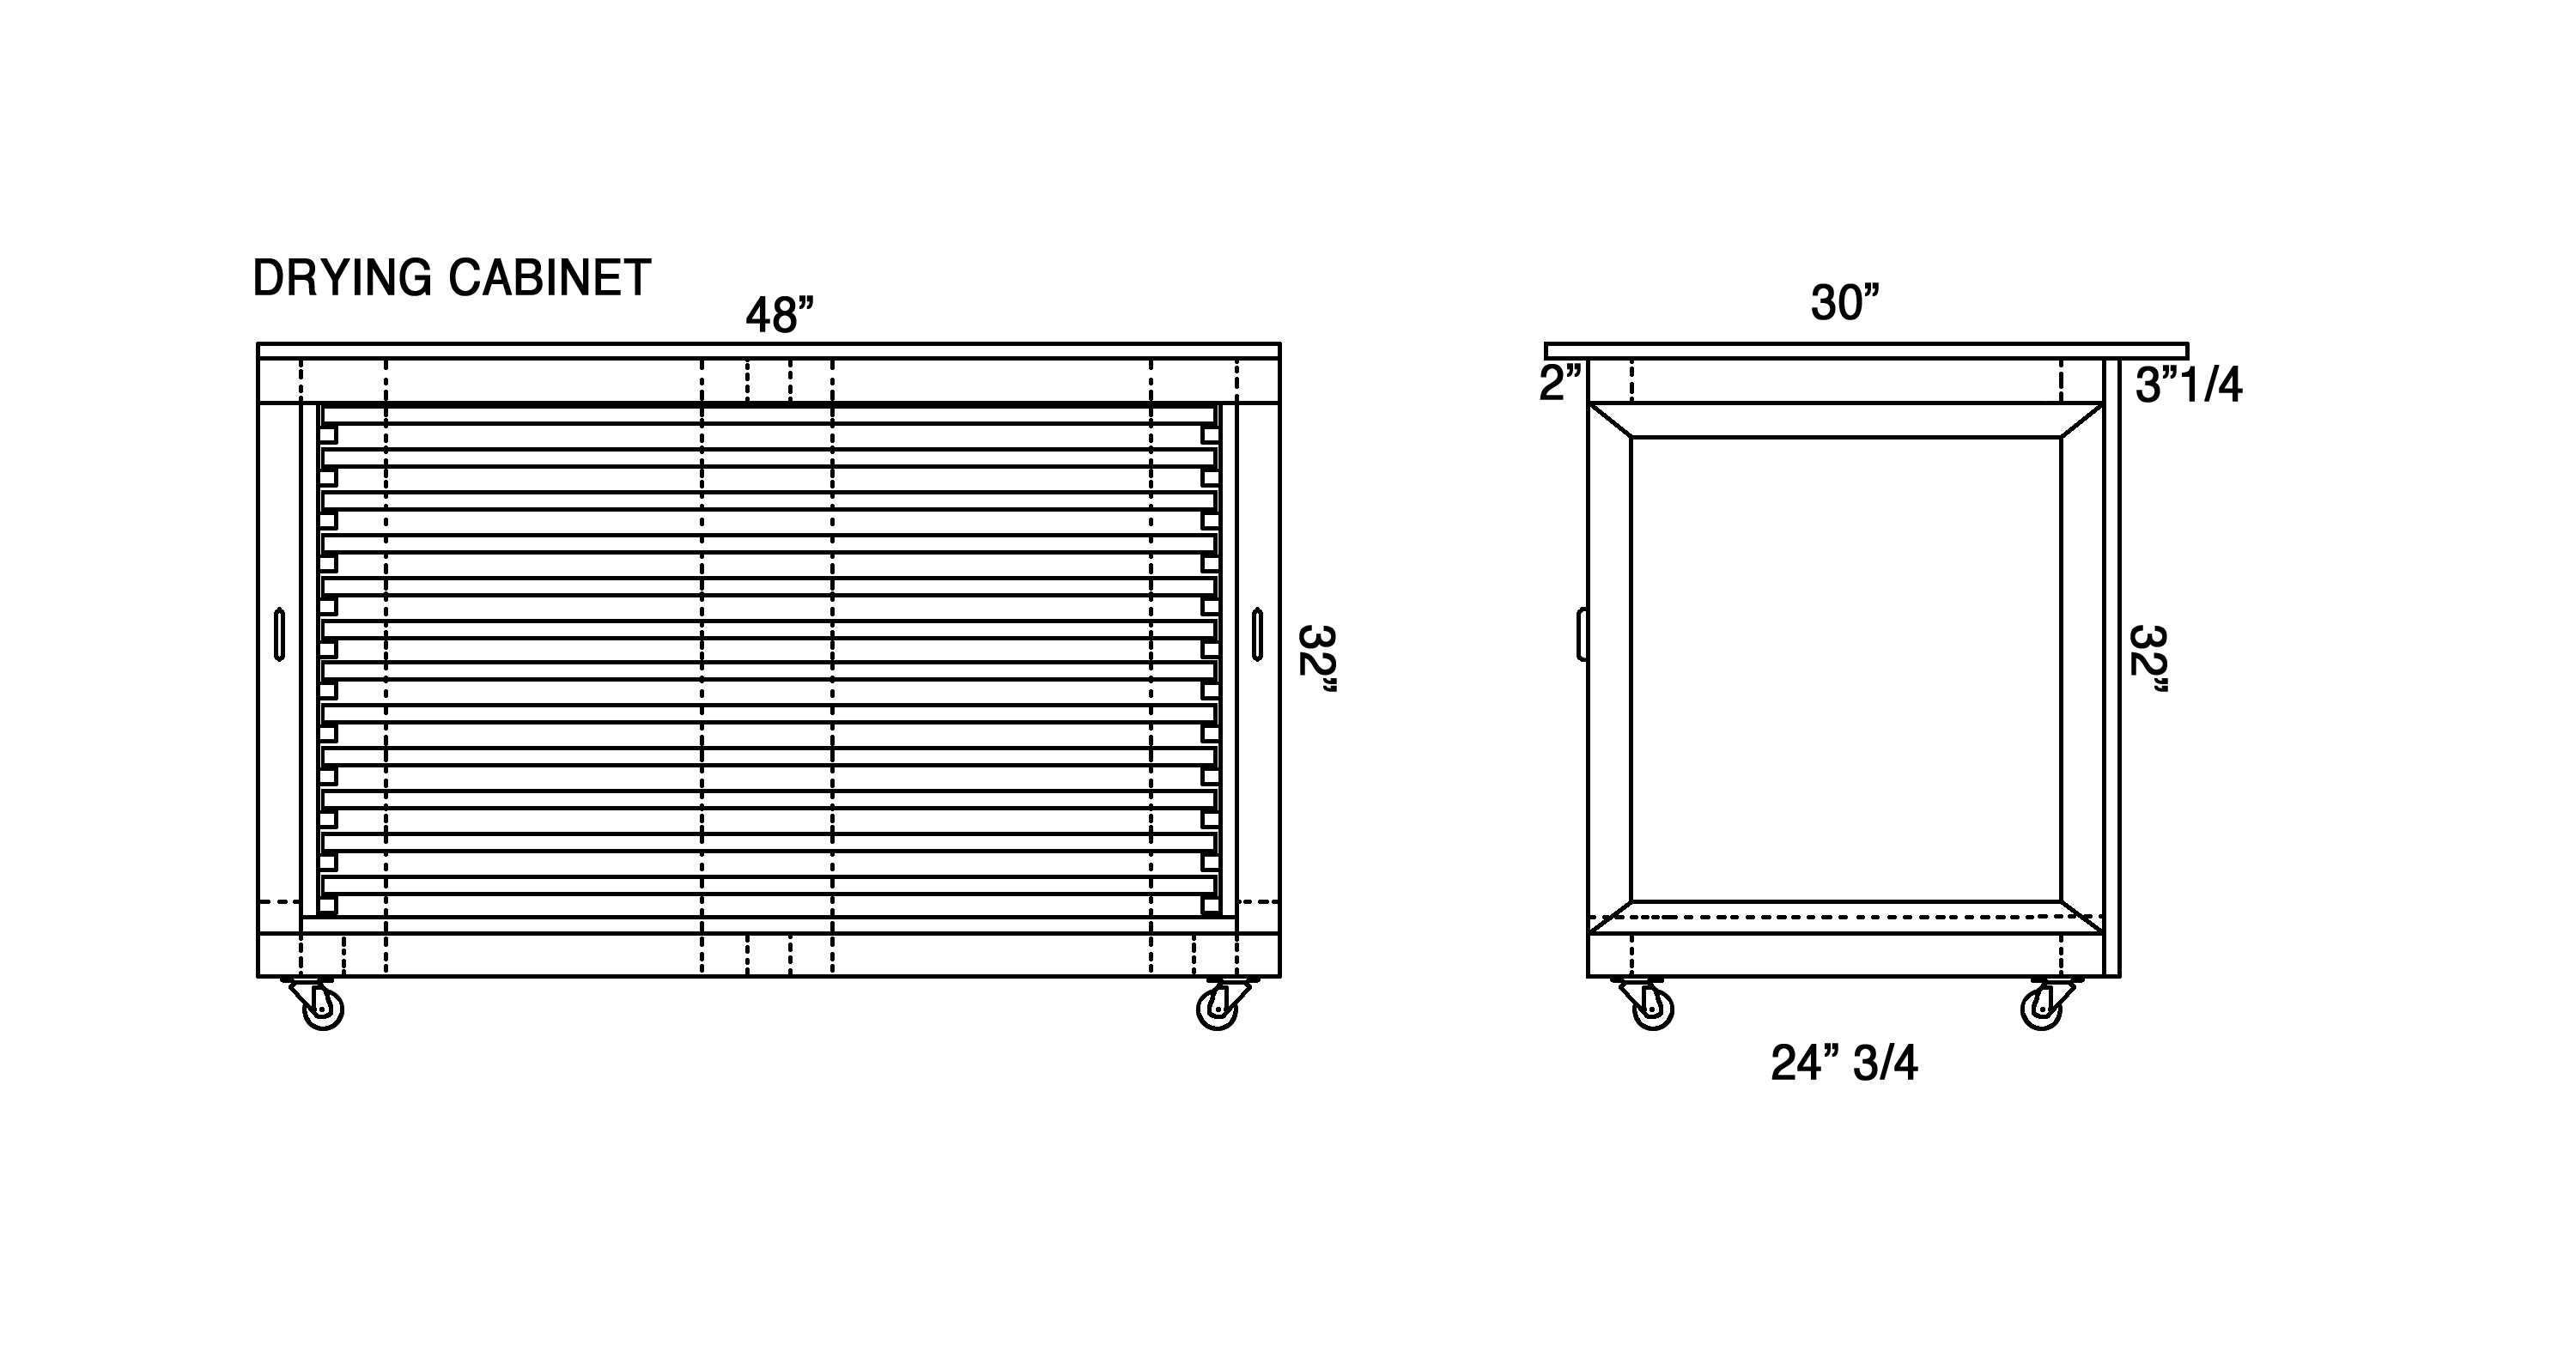 plans for drying cabinet